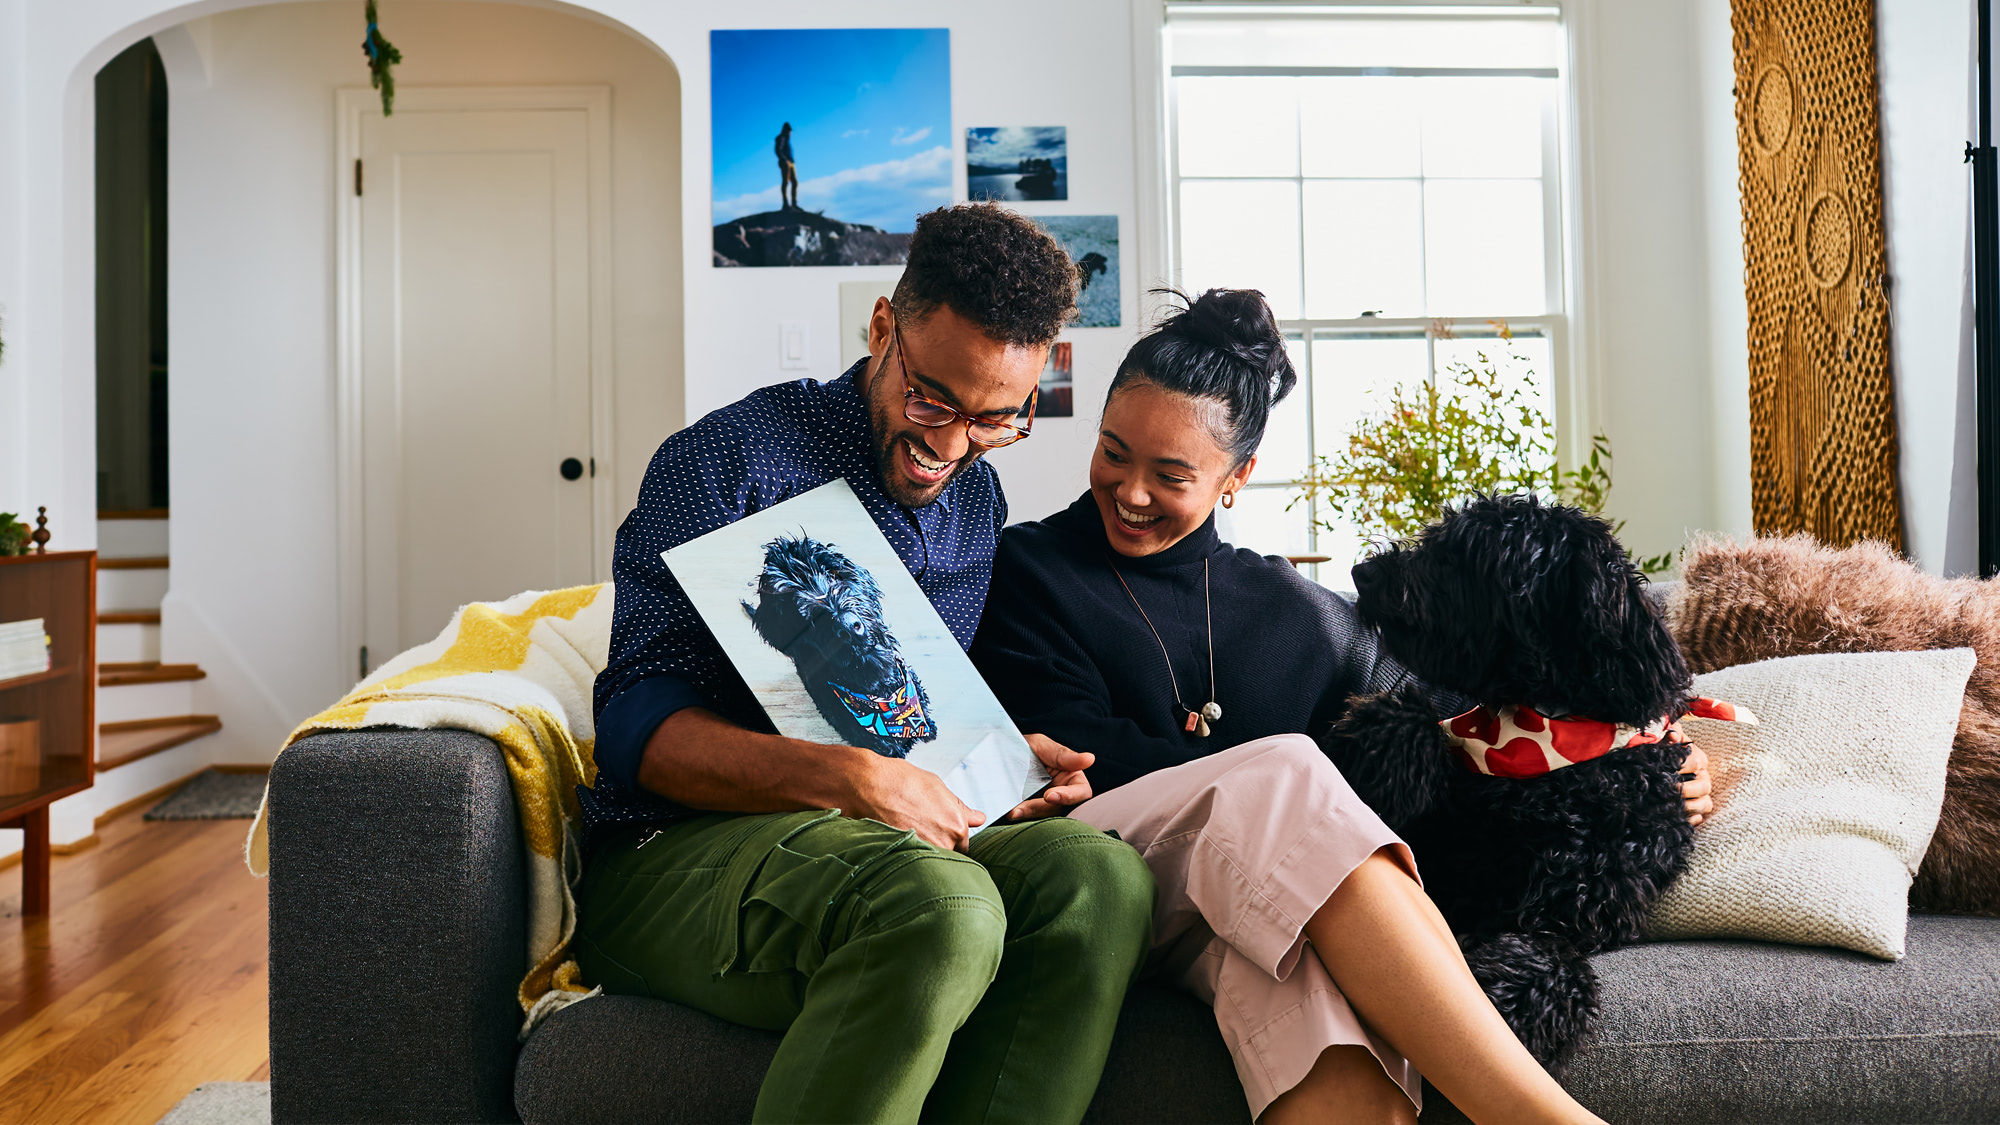 Couple looking at Fracture print of dog while sitting on couch